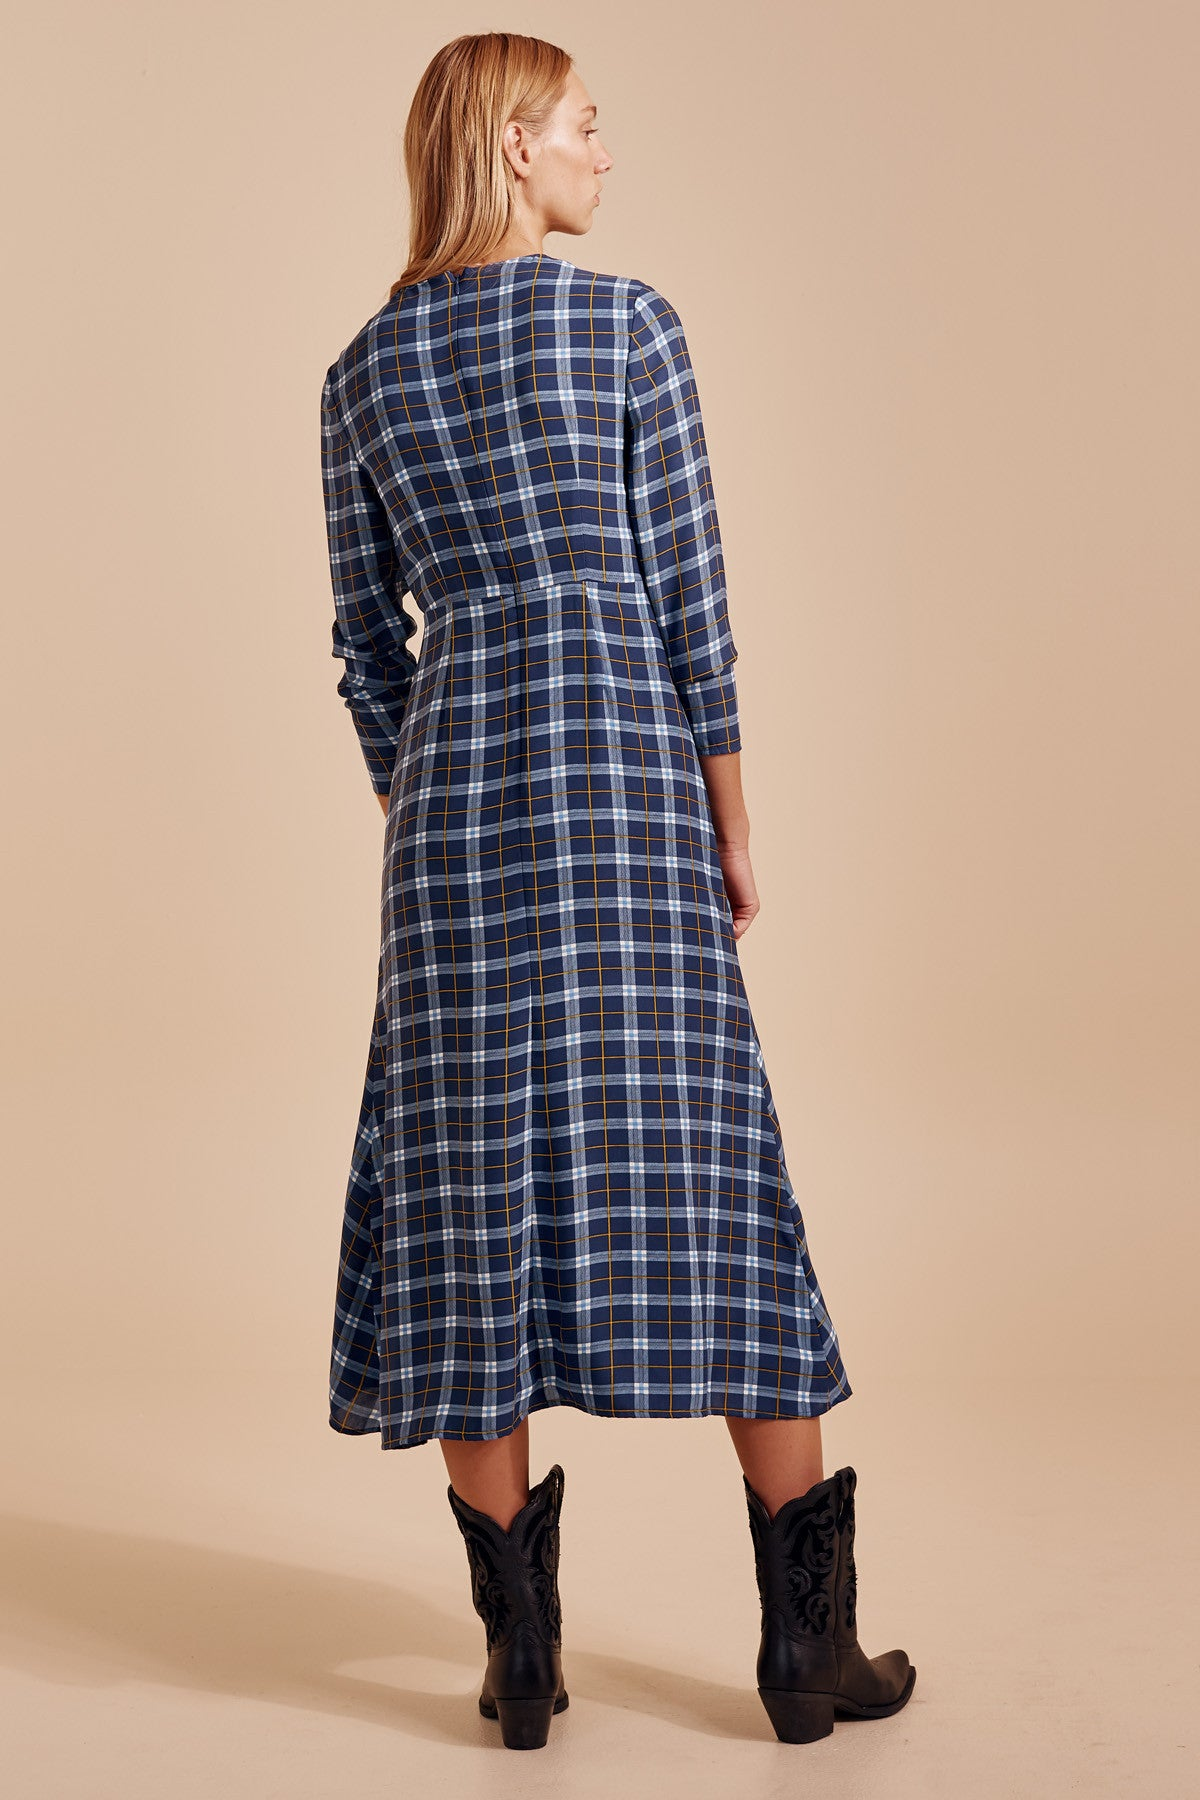 DEFINE LONG SLEEVE DRESS blue check